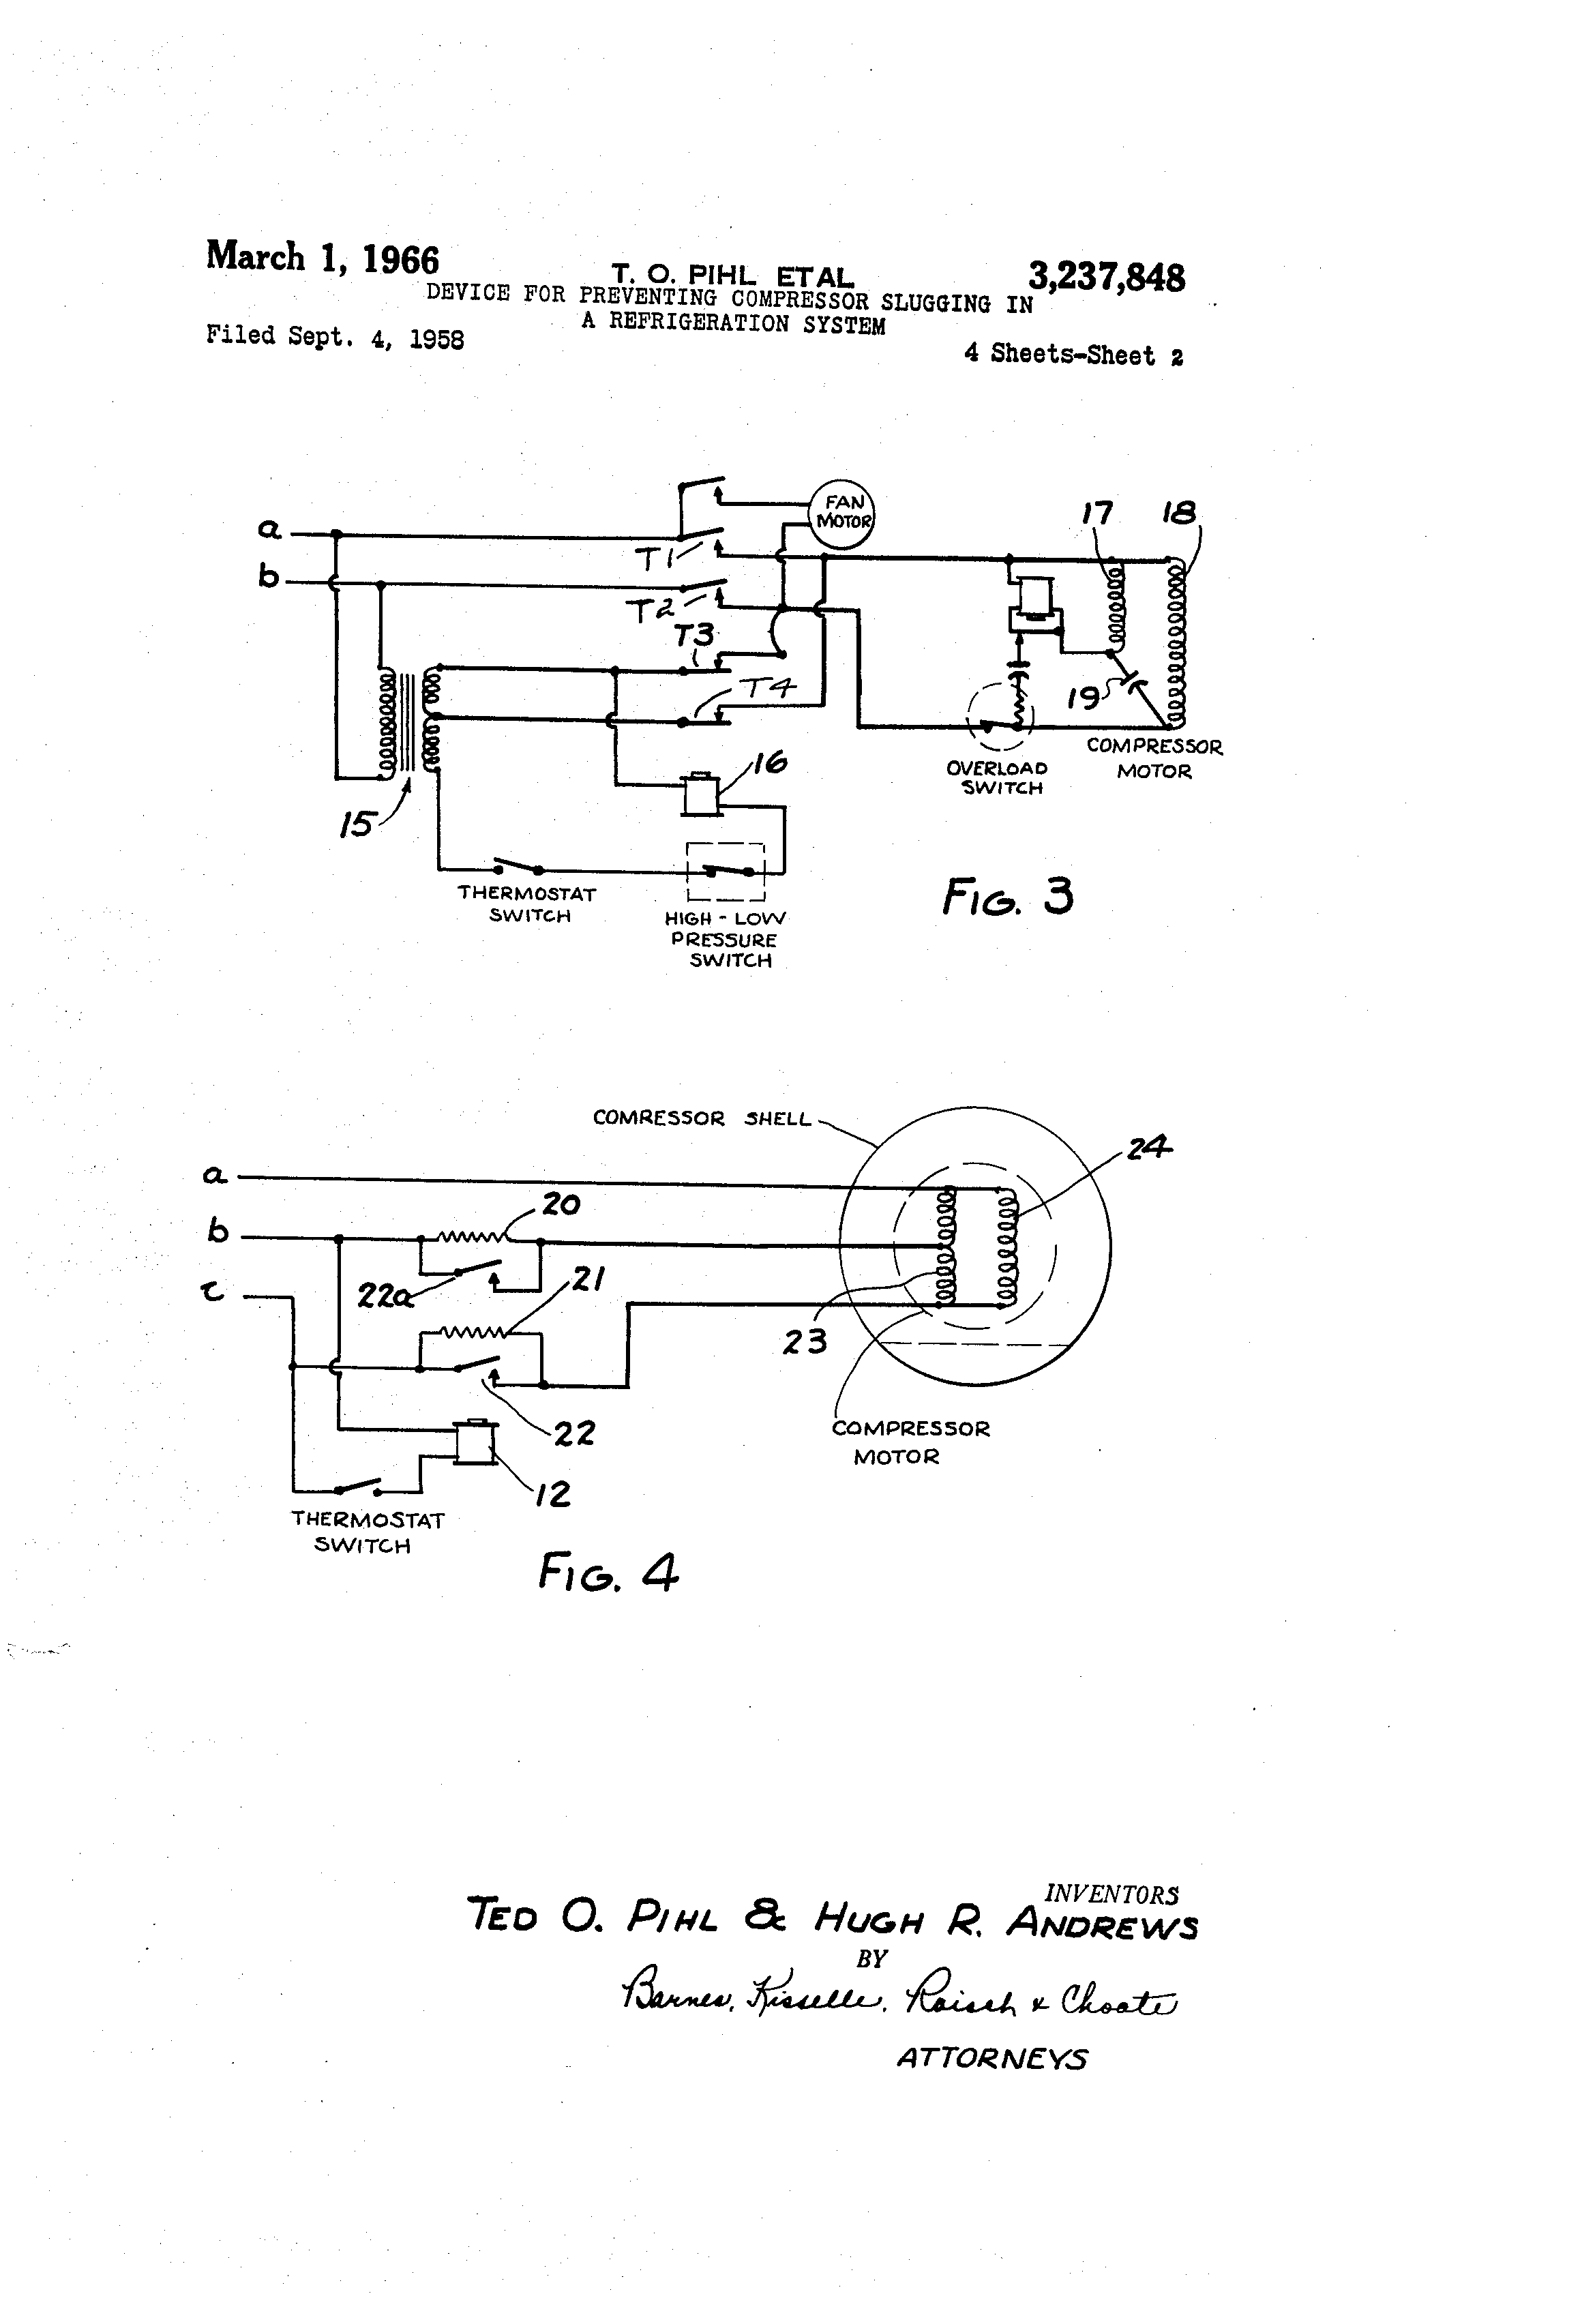 patent us3237848 device for preventing compressor slugging in a patent drawing